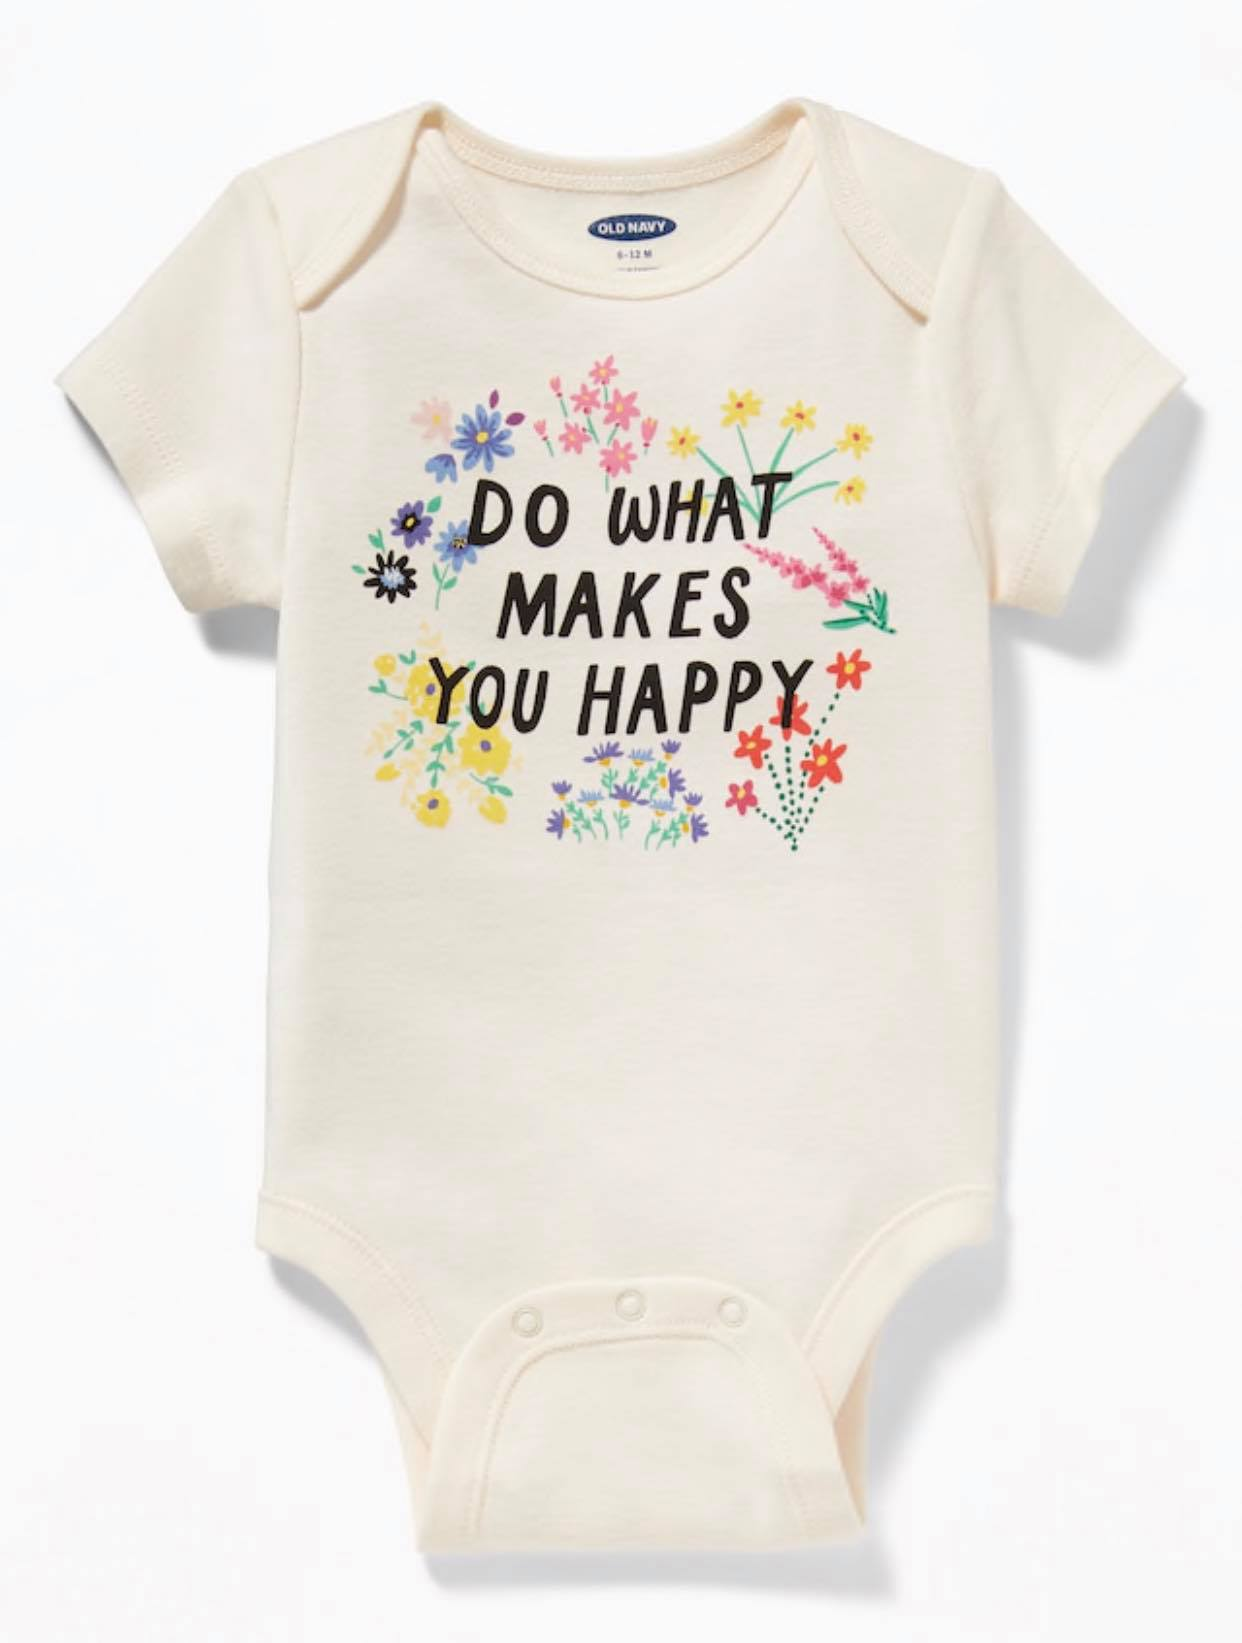 Bodysuit OldNavy 05 [Girl] - Trắng/Do What Makes You Happy